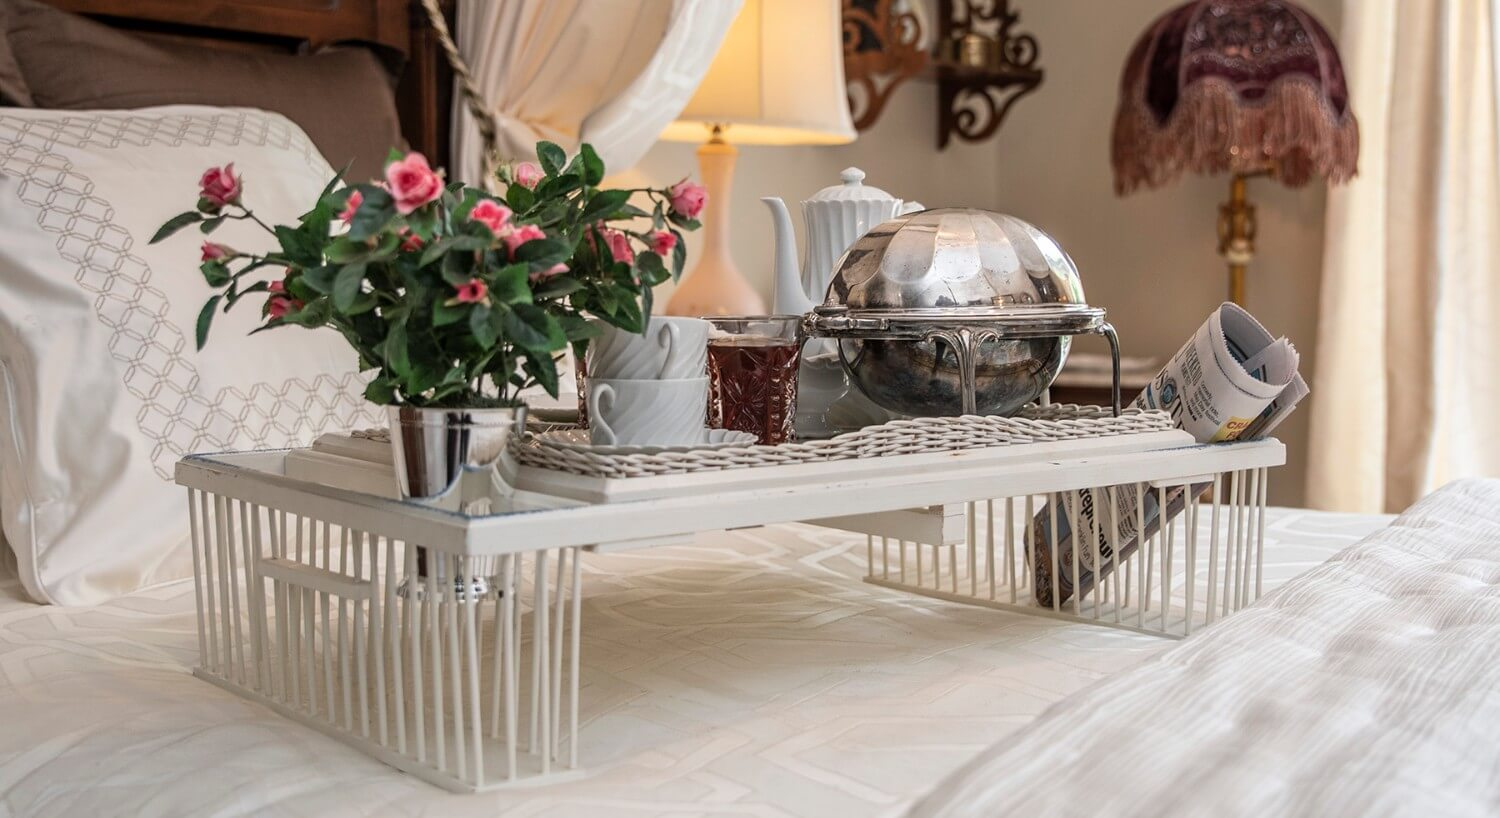 Breakfast tray set with silver and roses on a bed made up in white bedding.